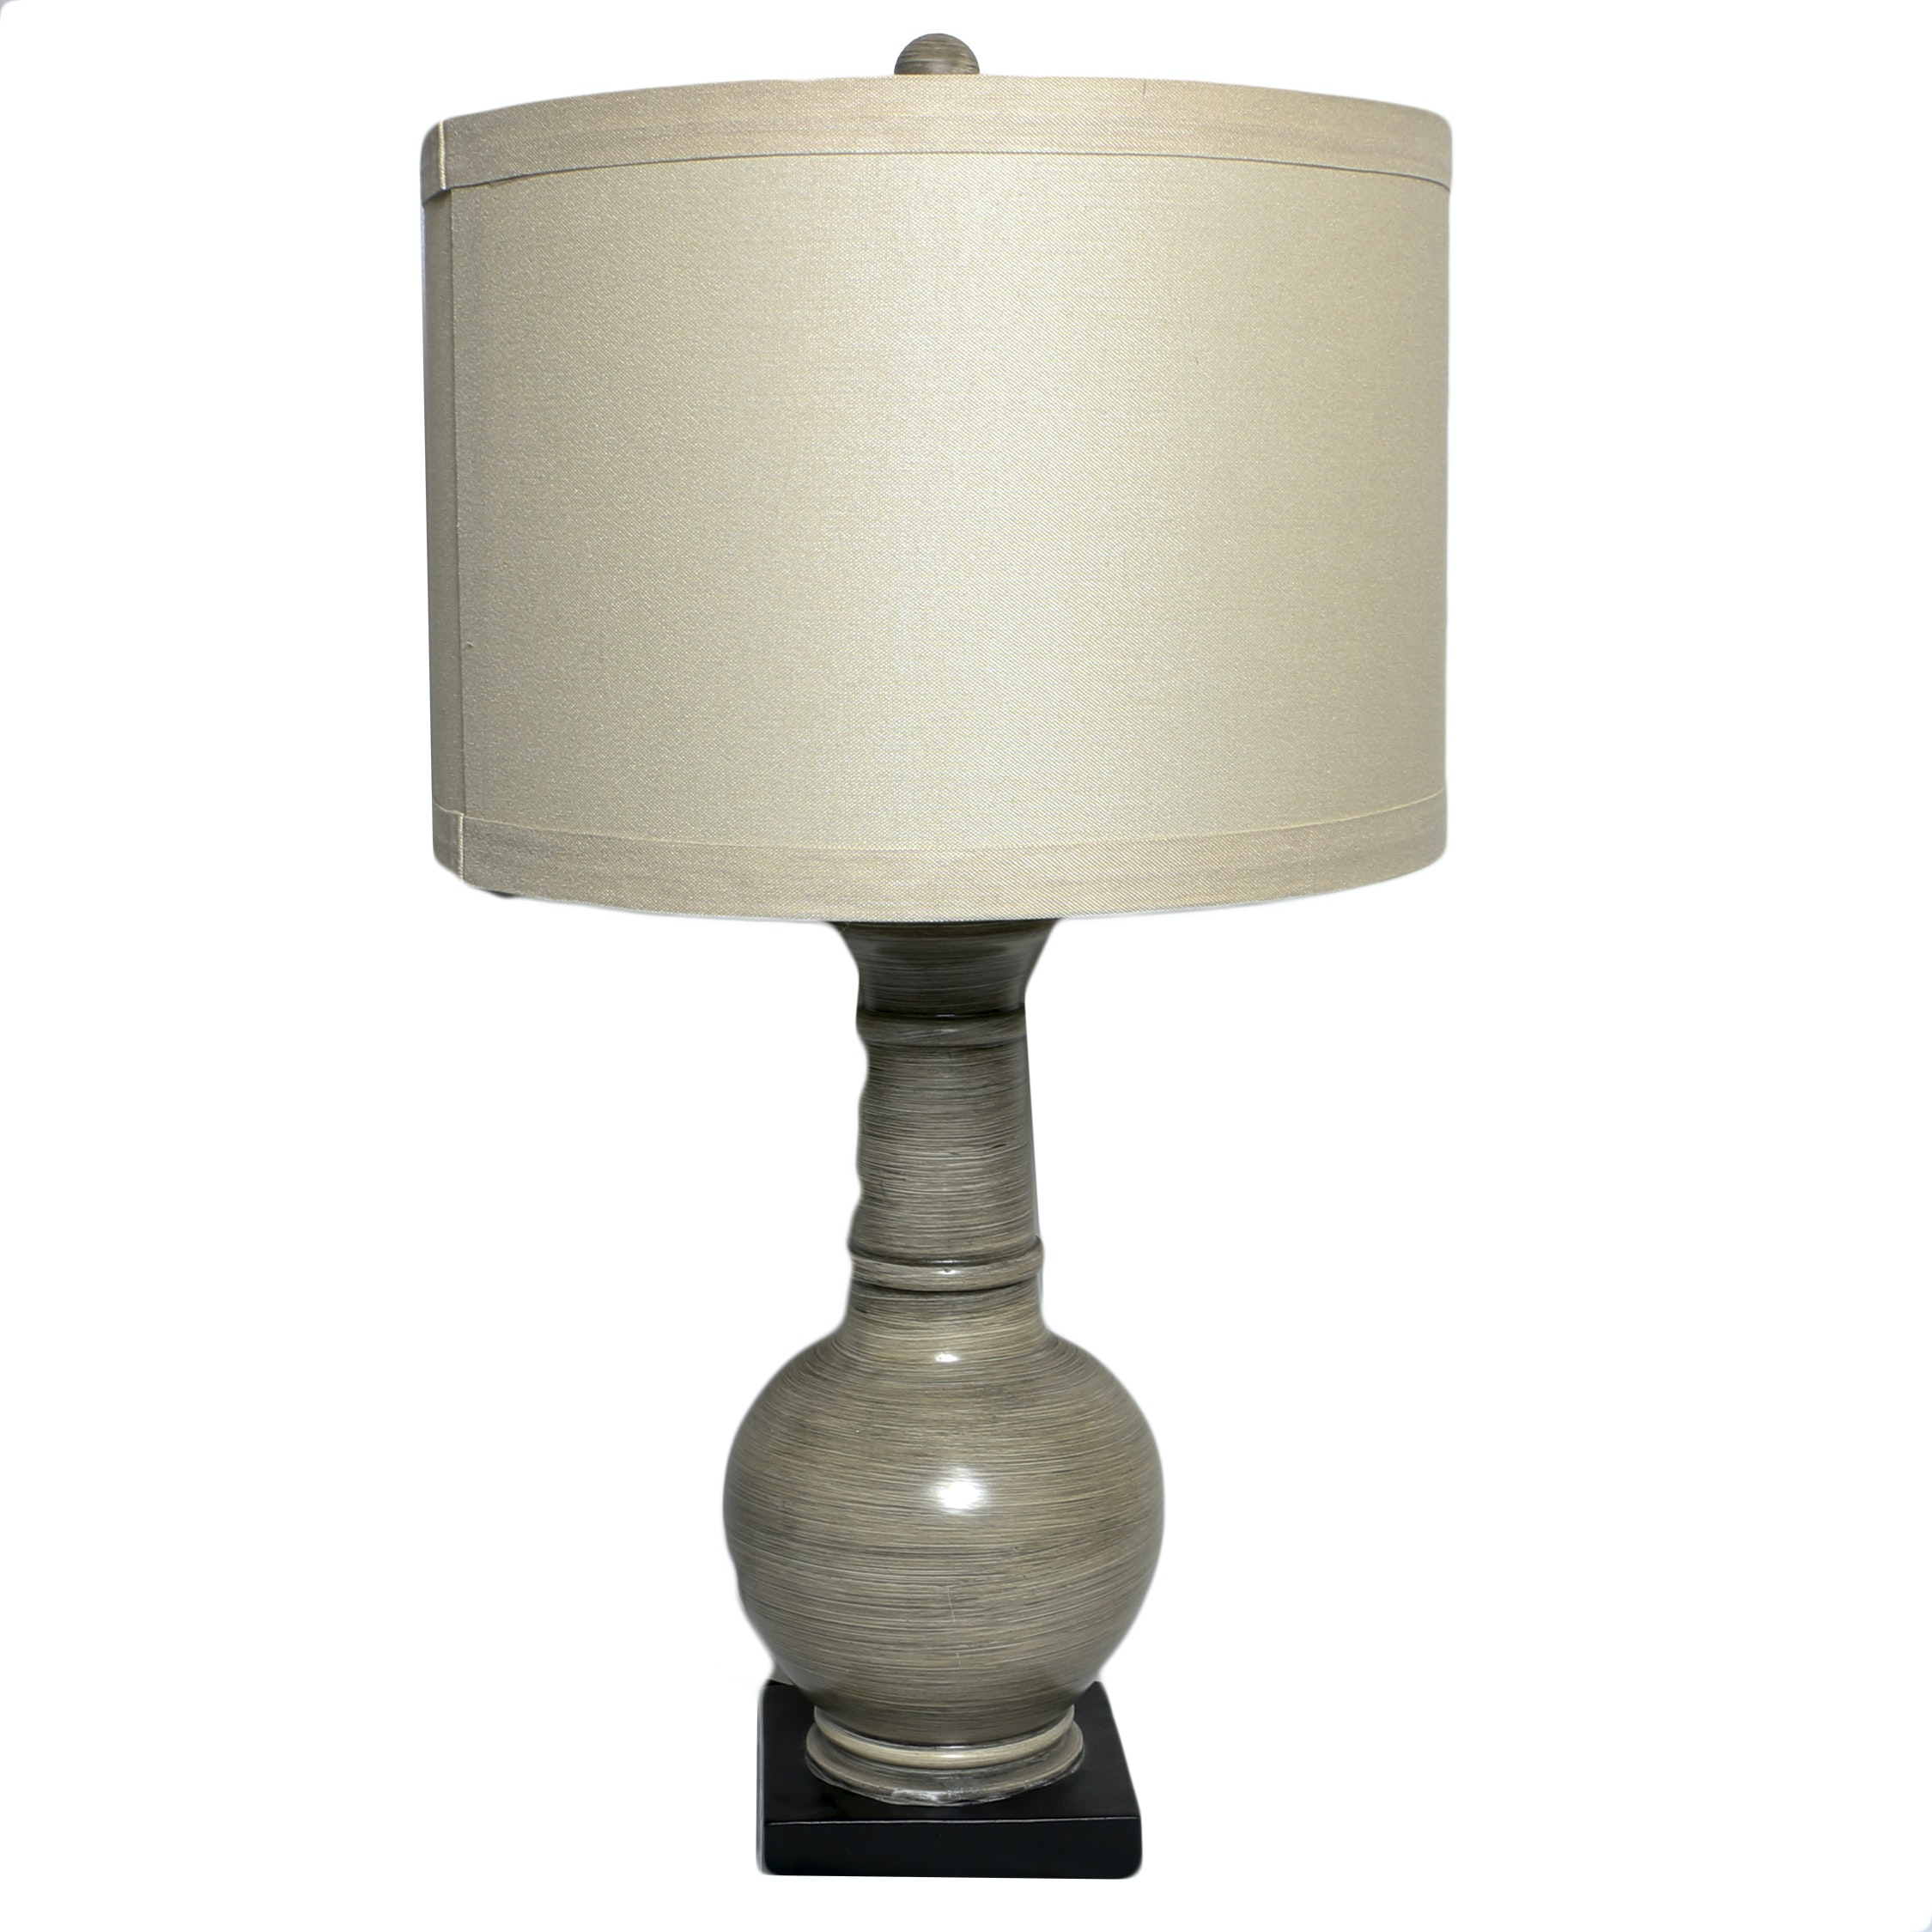 Antiqued Resin Vase Form Table Lamp with Drum Shade